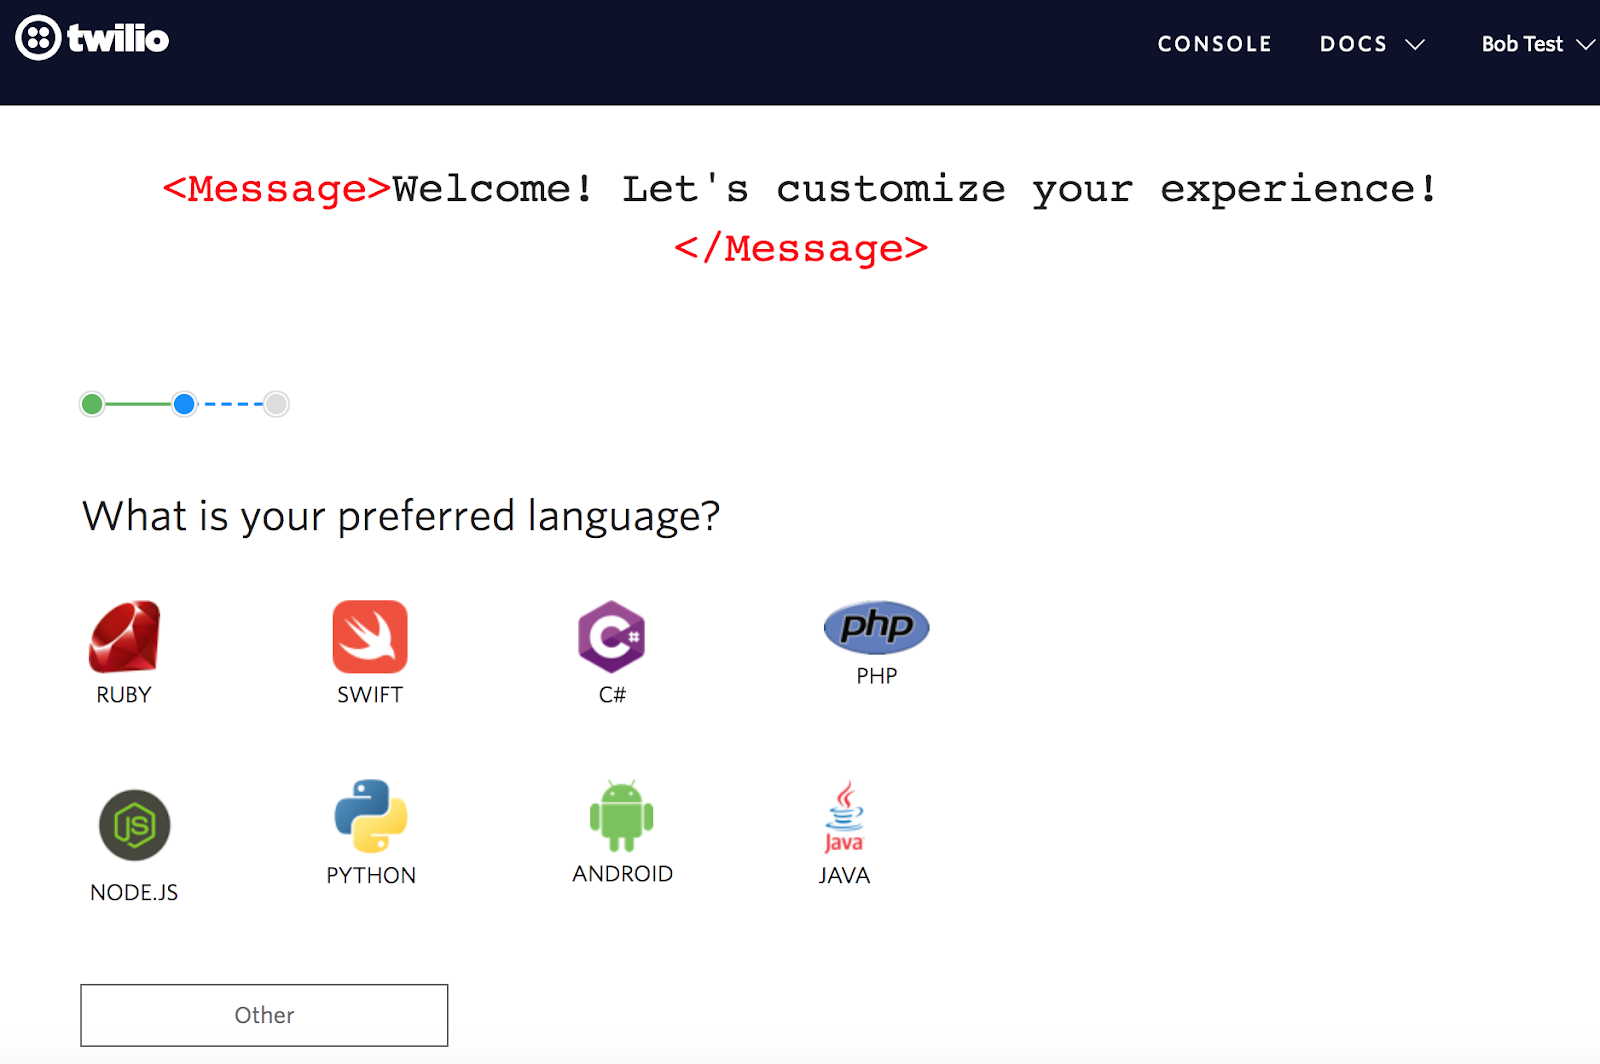 twilio user onboarding personalization question 2